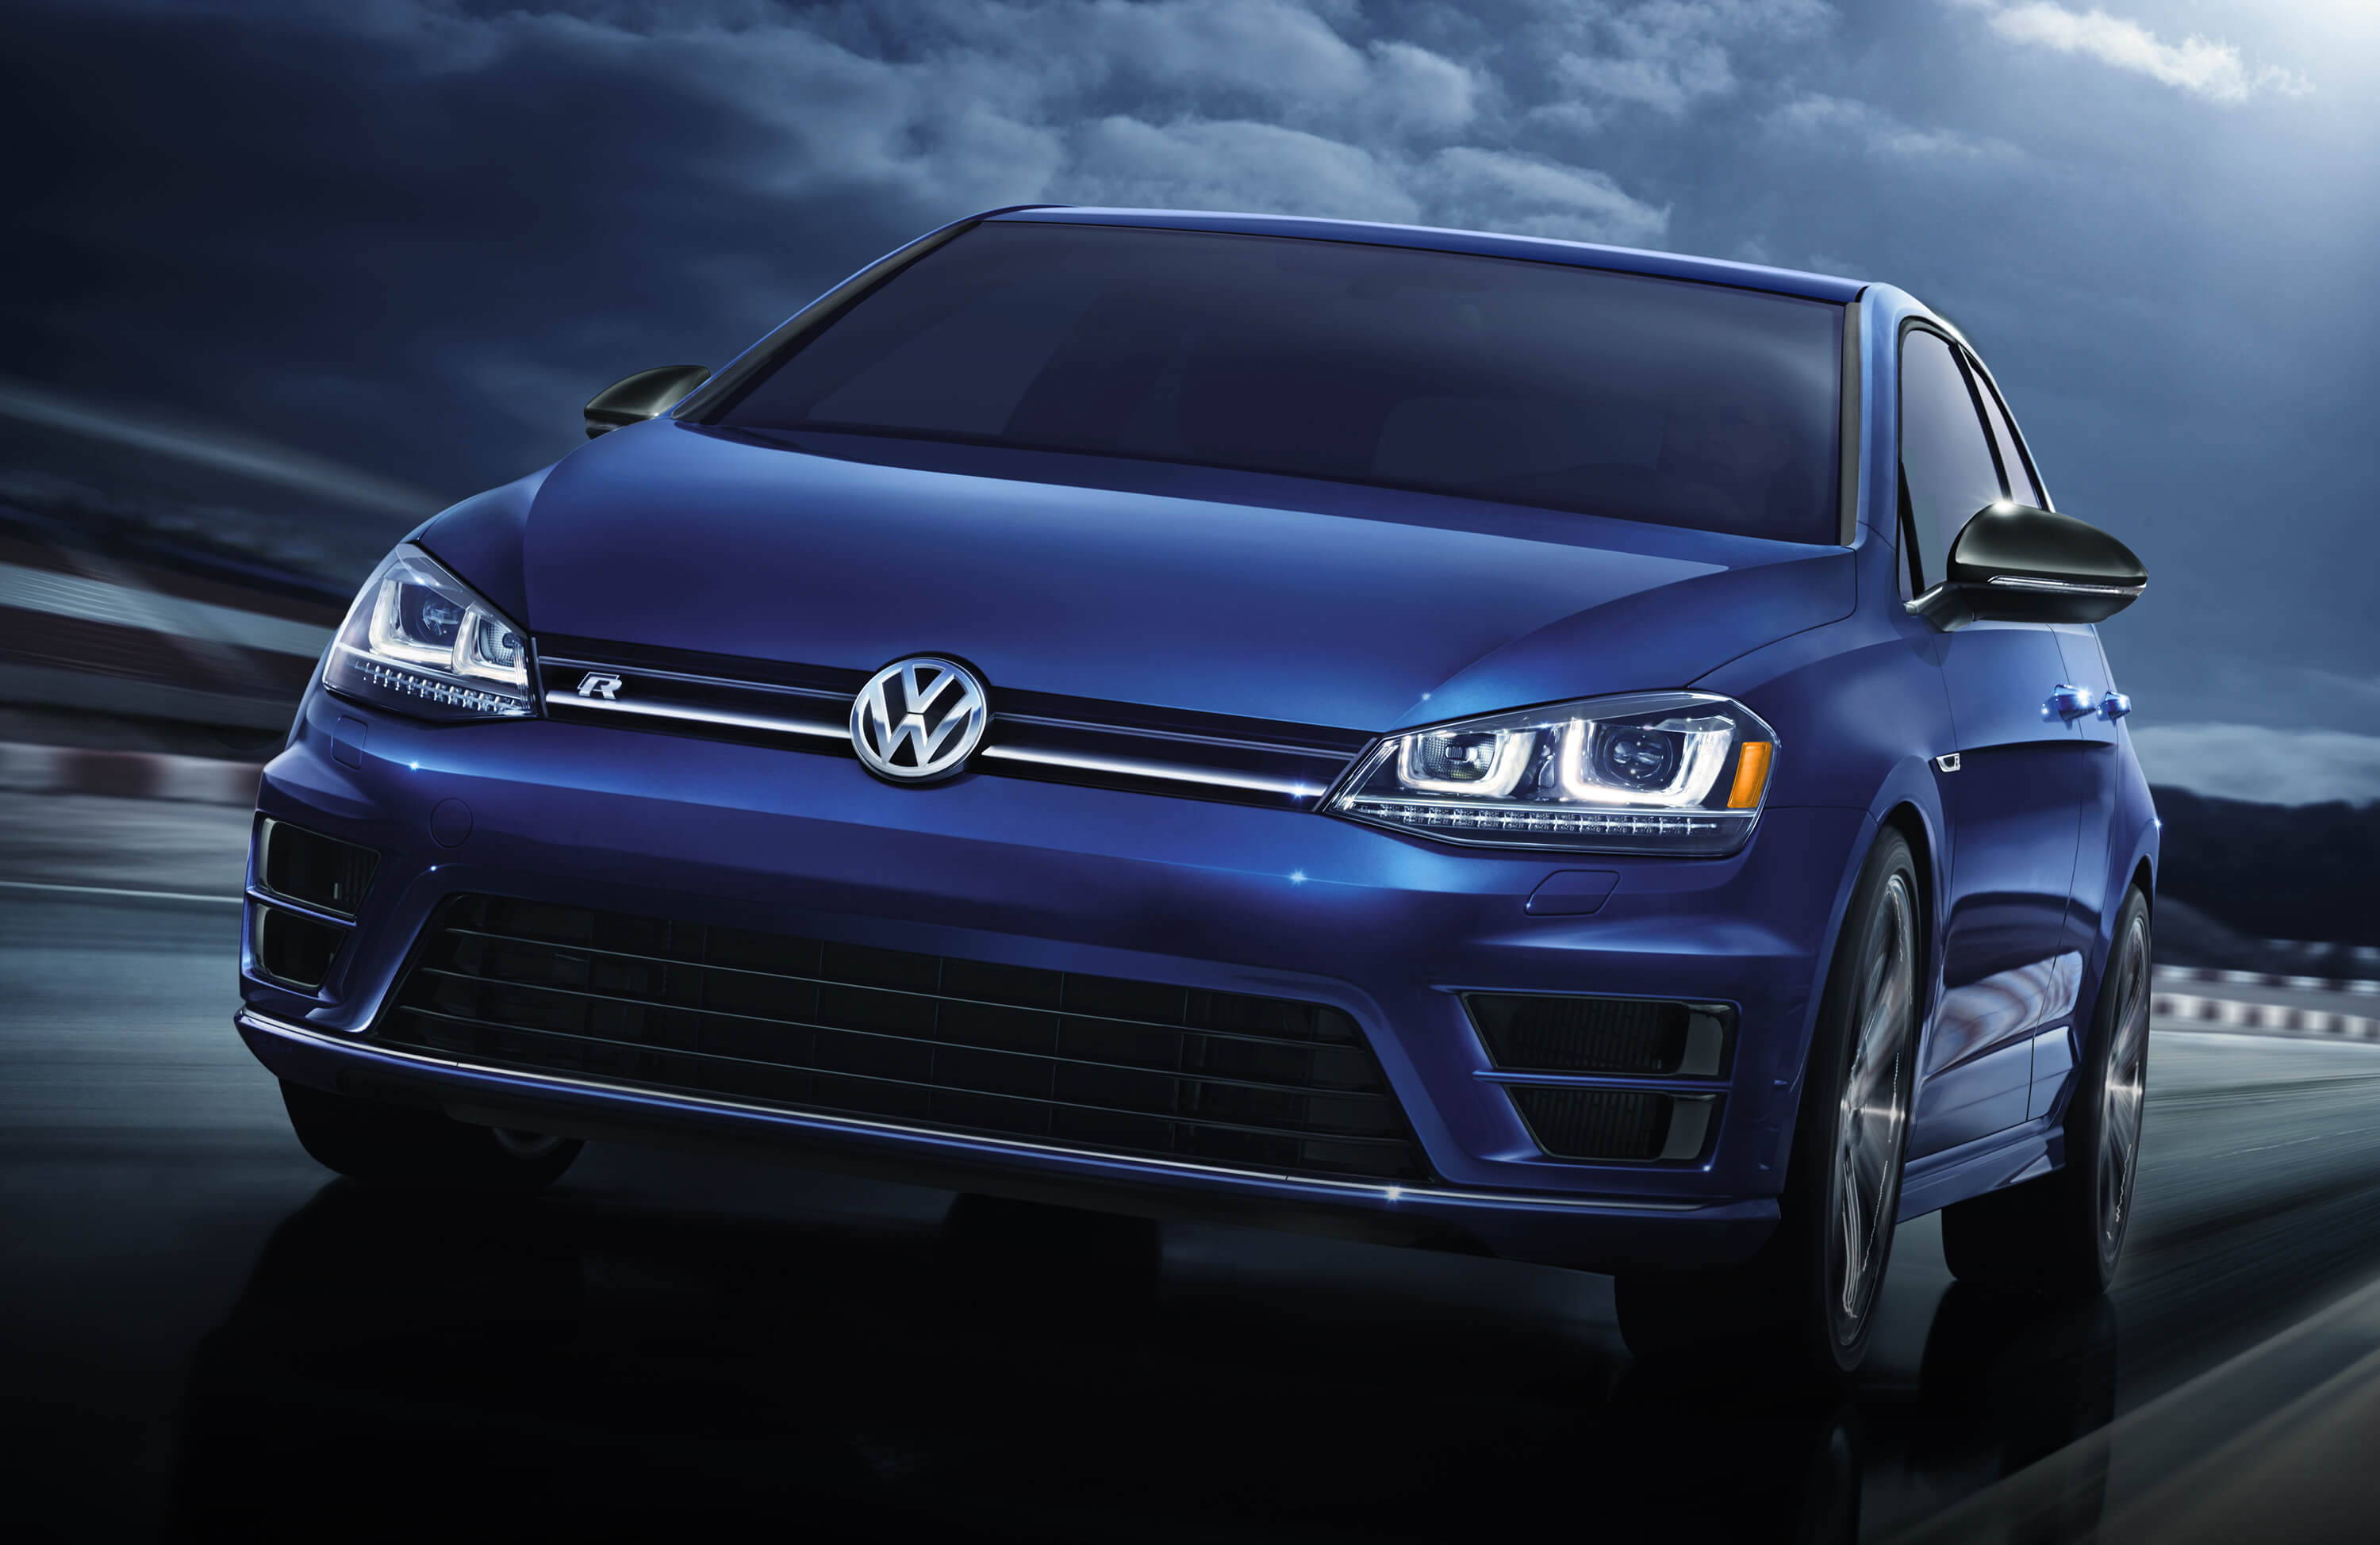 new price date review passat interior volkswagen upgrade suv release lease alltrack